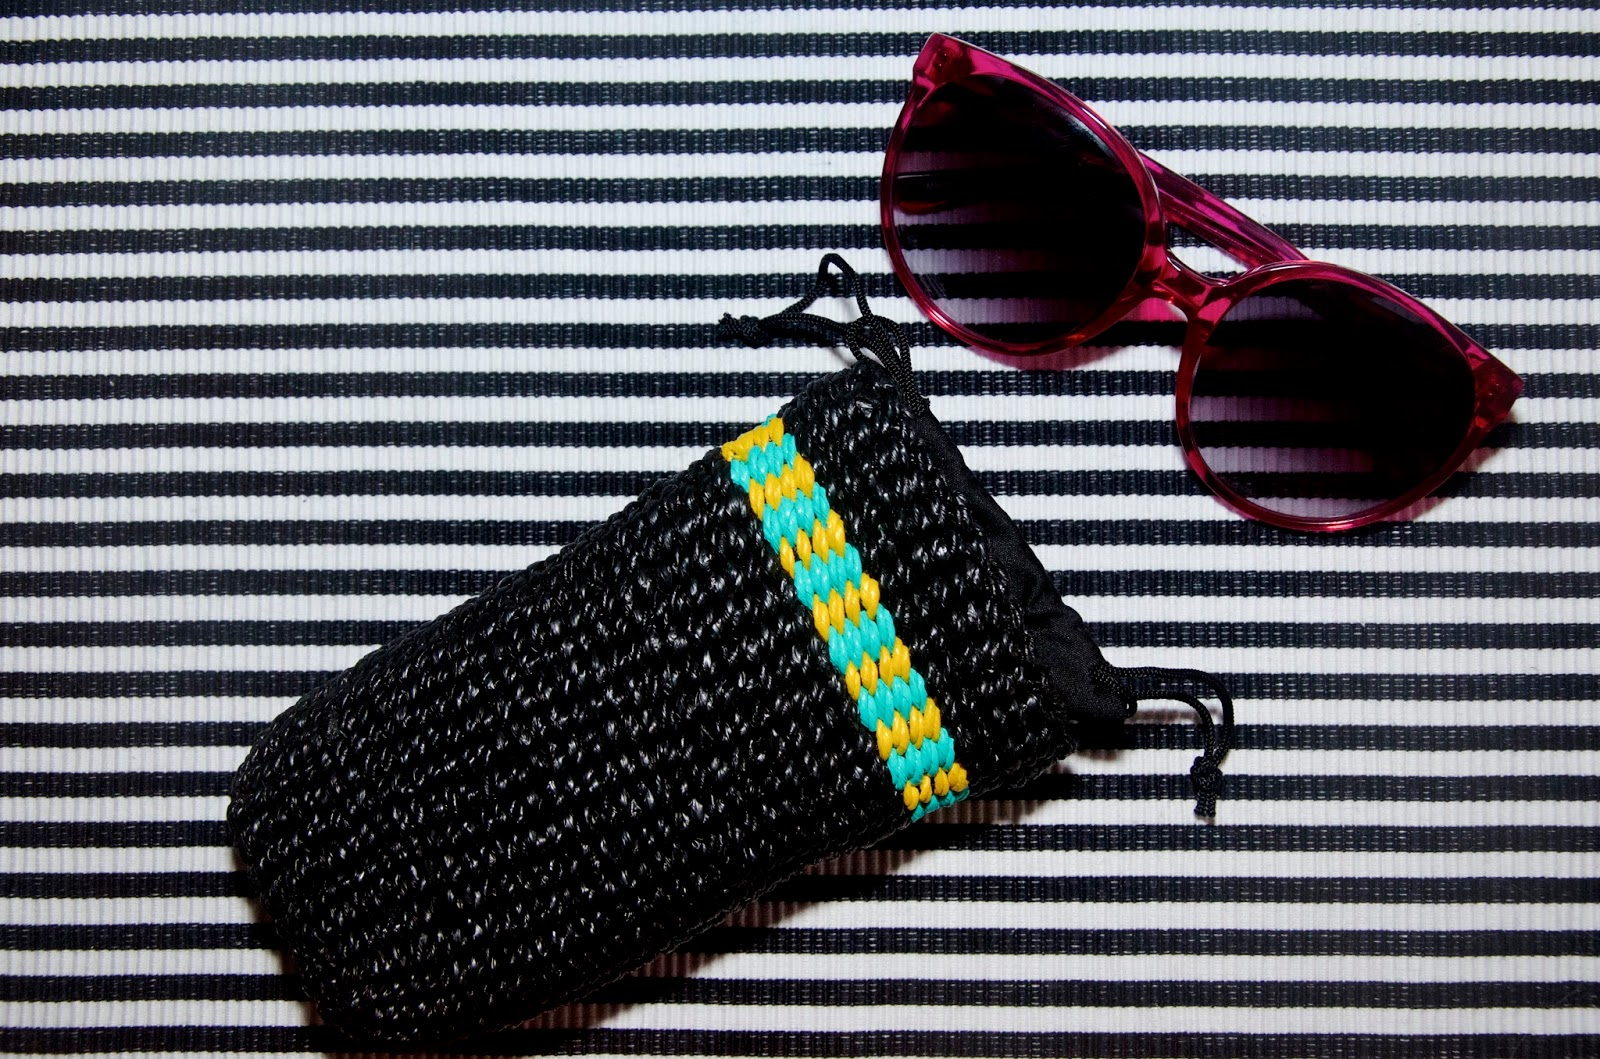 Hot Pink Sunglasses and plastic woven case on striped background